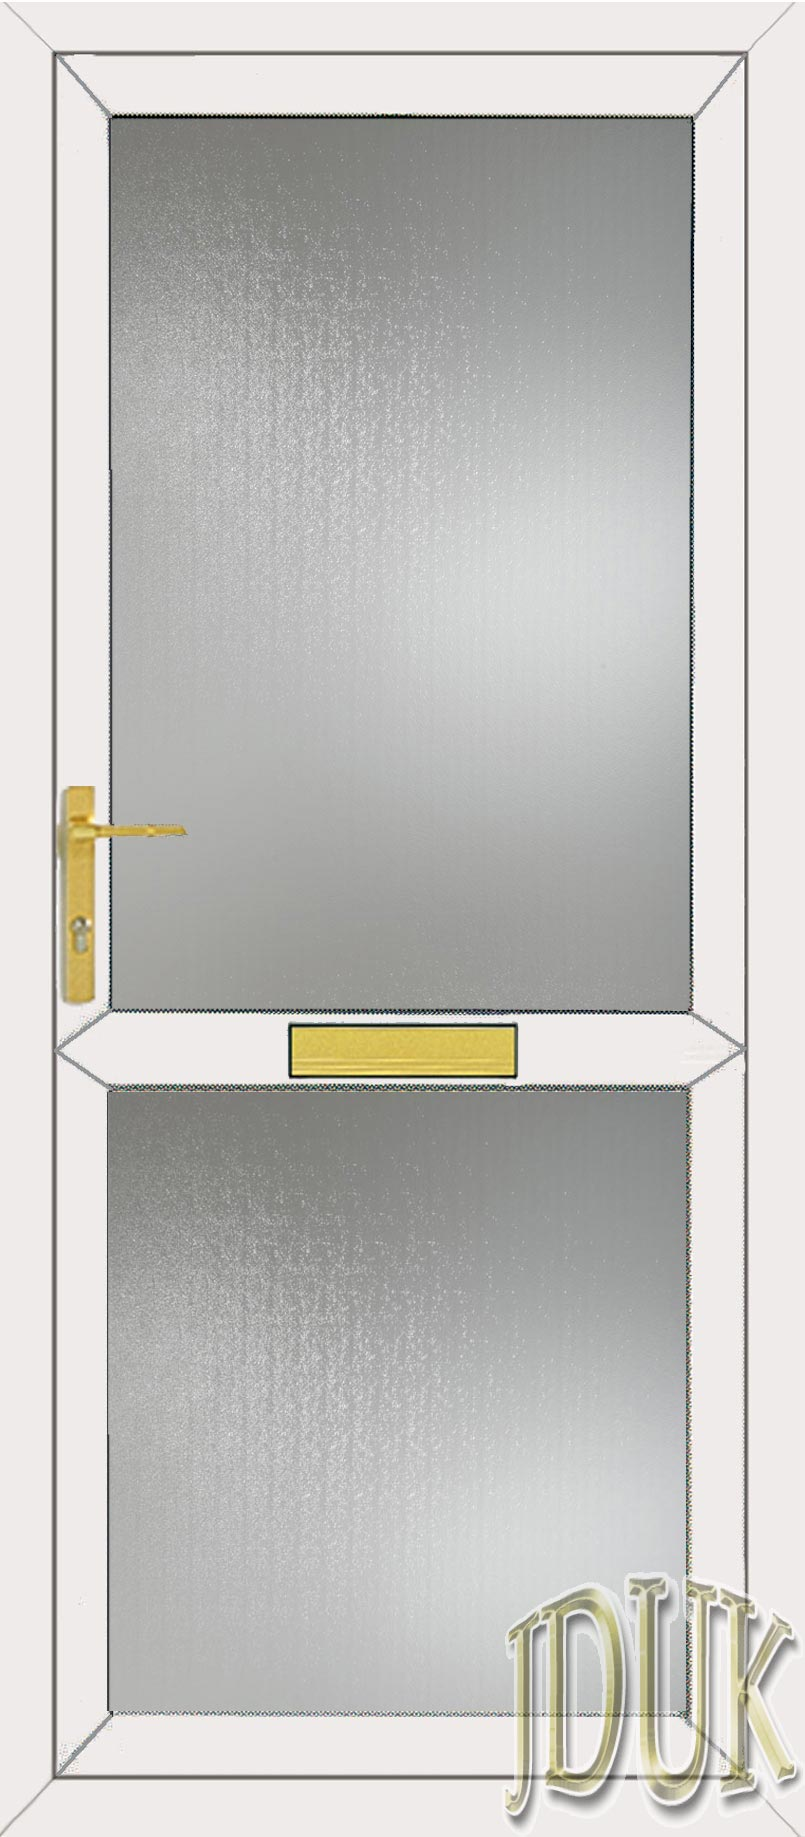 Standard specification for Upvc glass front doors